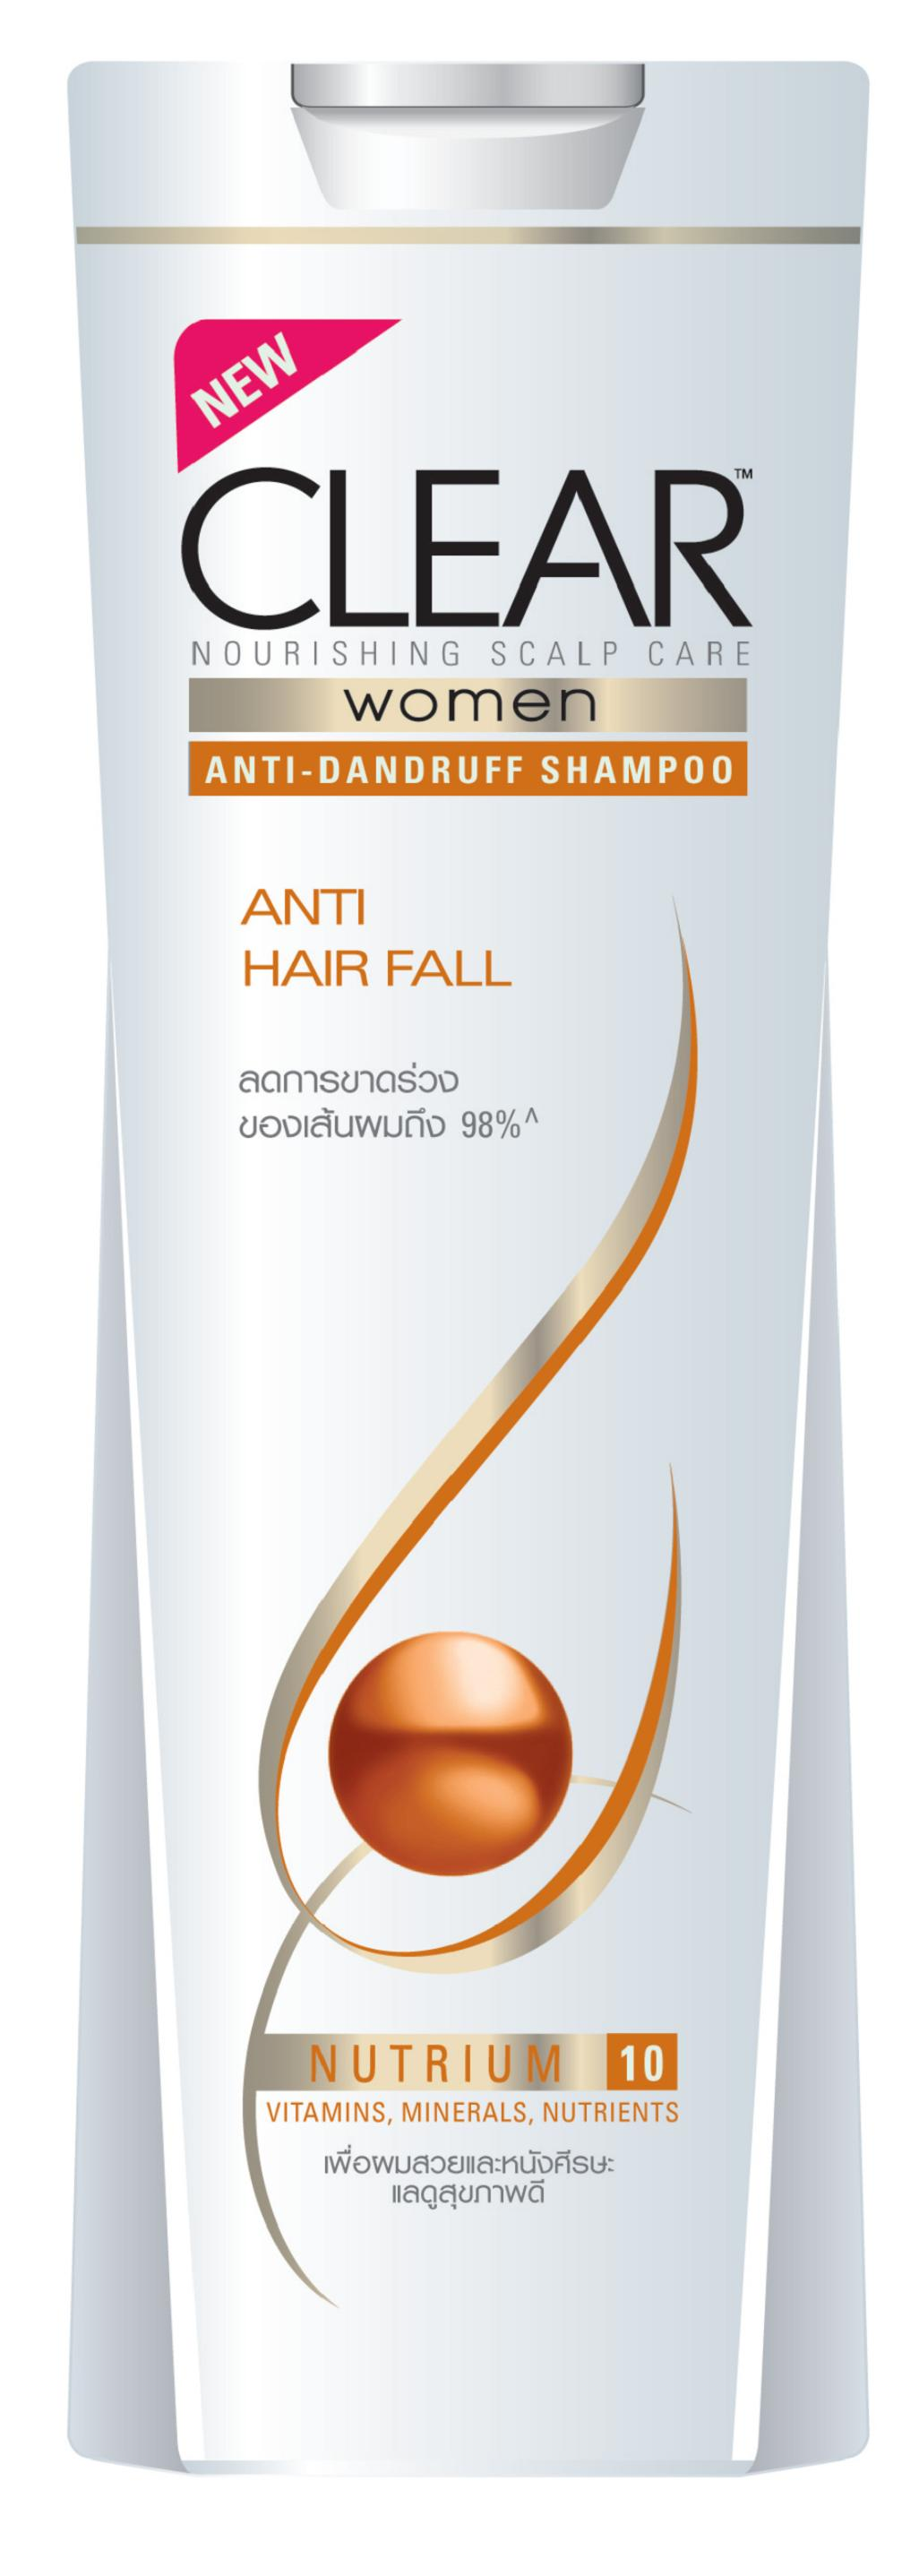 CLEAR Anti Hair Fall Shampoo for Women